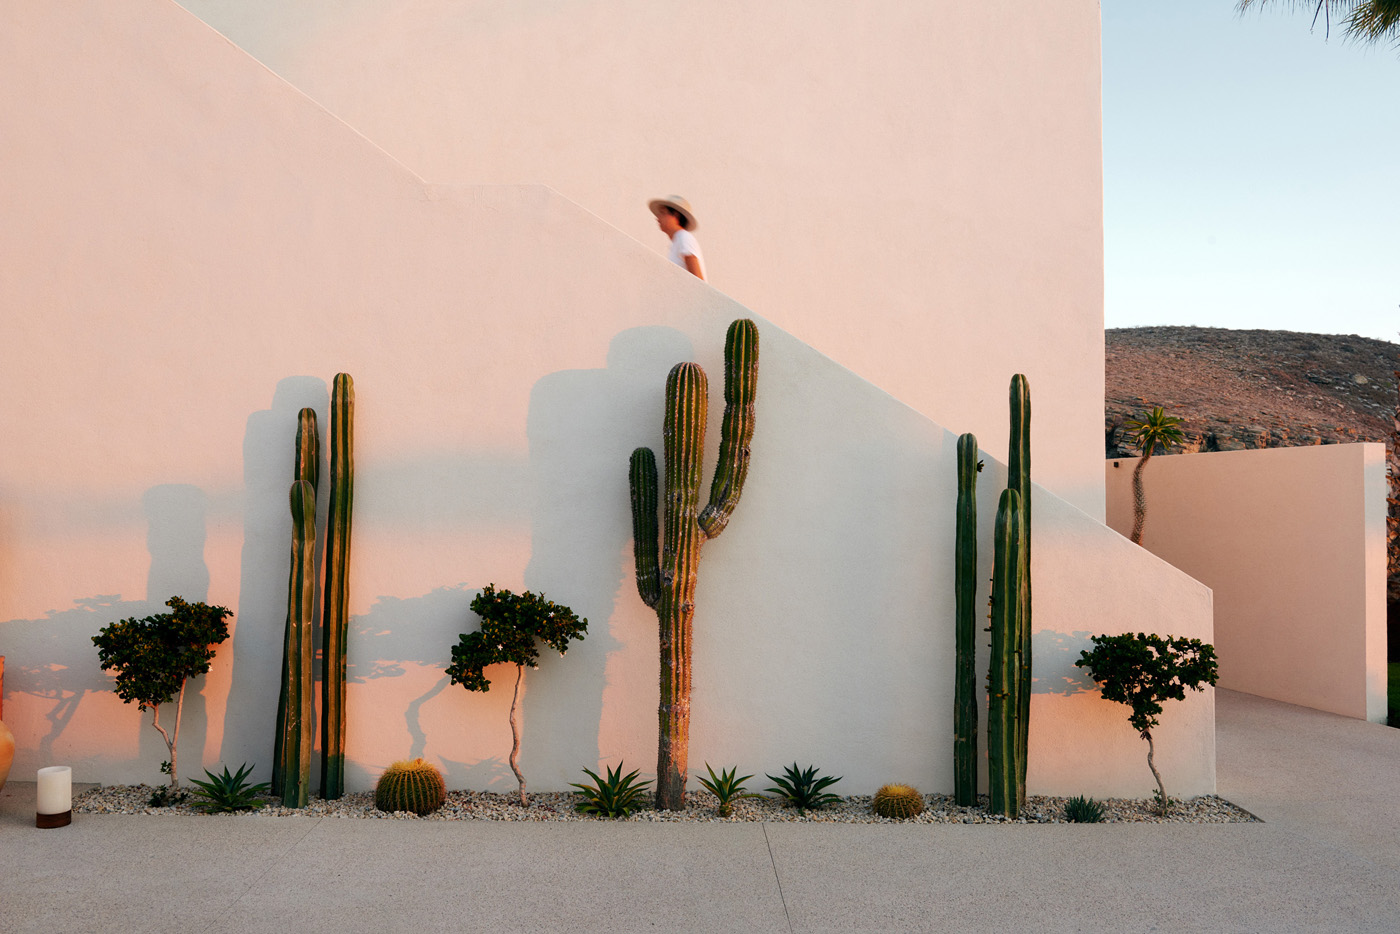 Exterior of hotel with Cacti